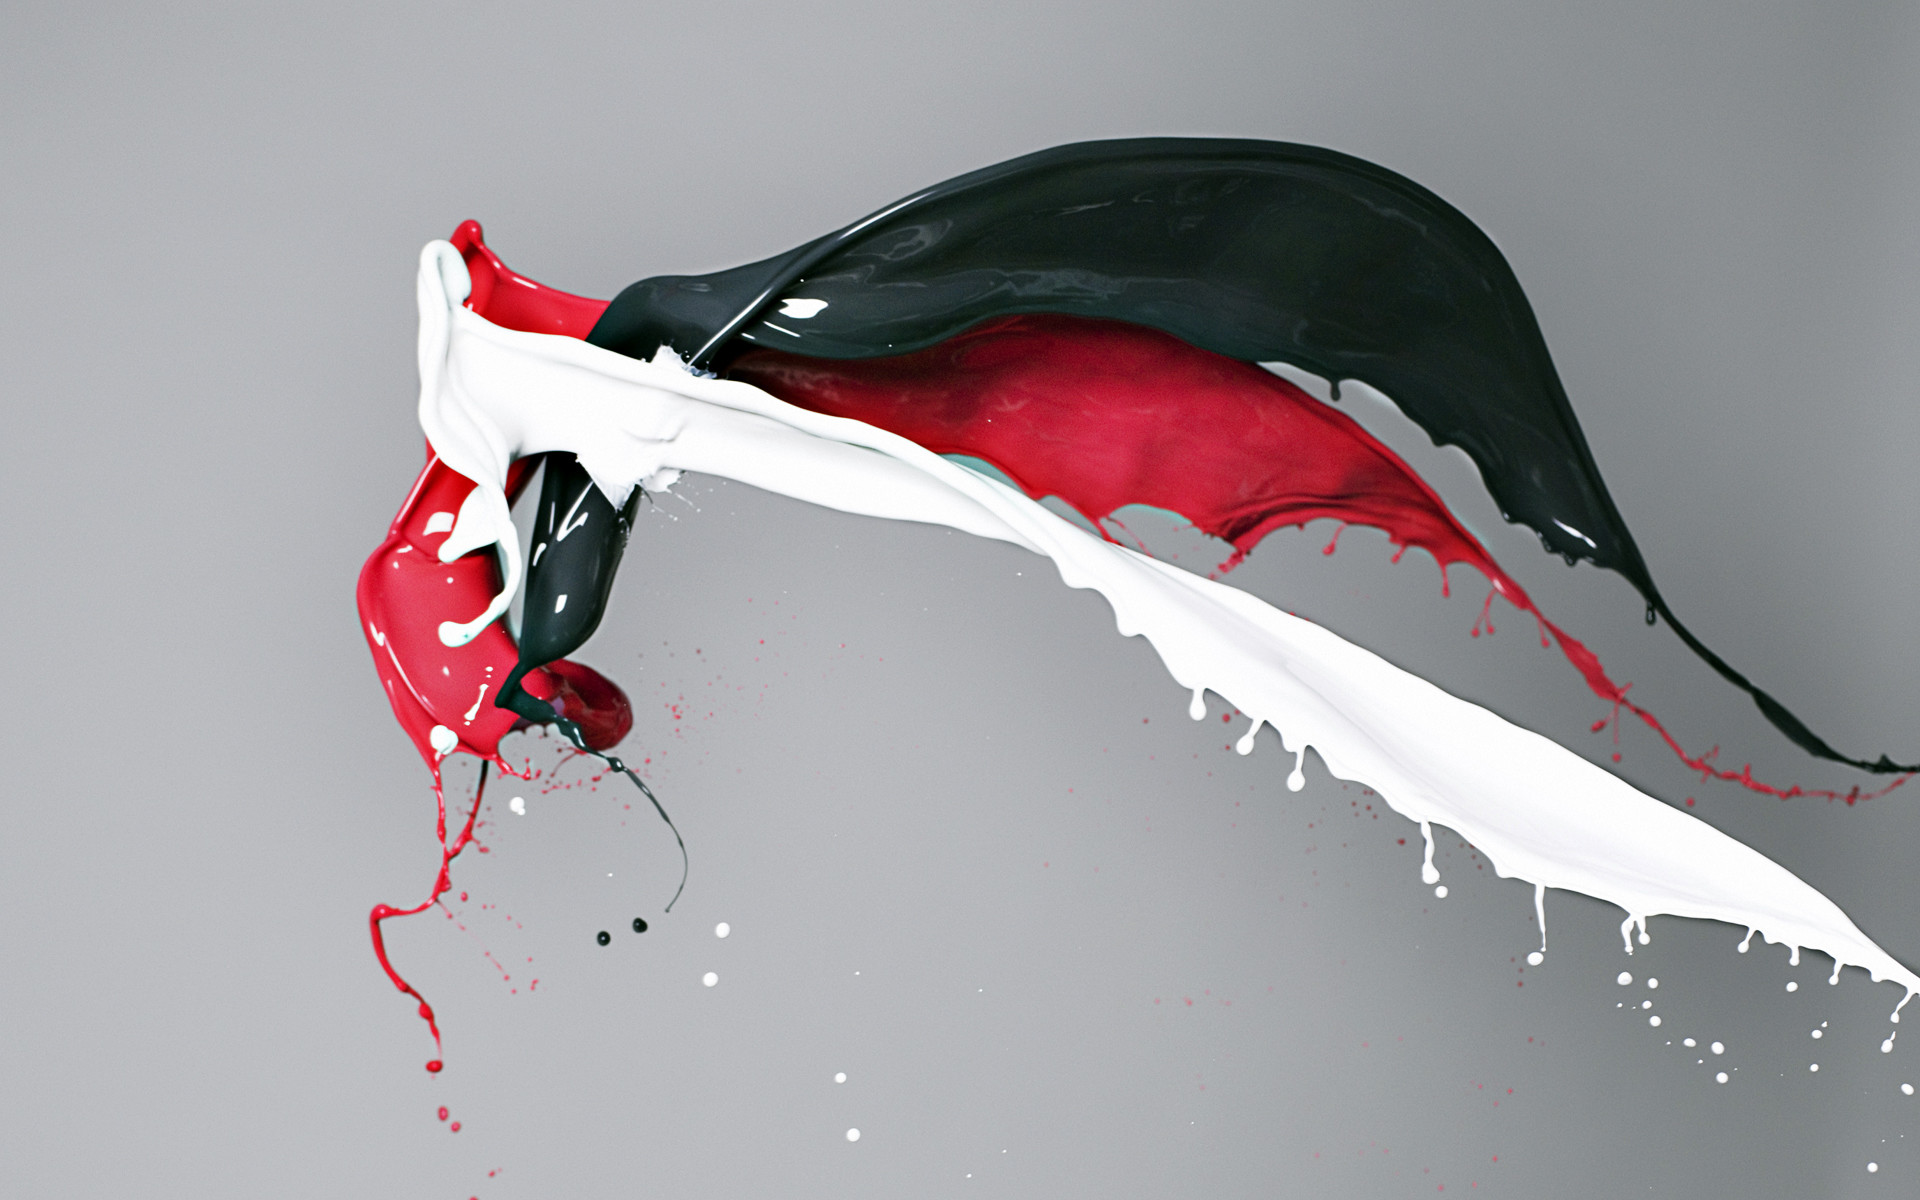 1920x1200 Red white and black paint colliding HD Wallpaper ()